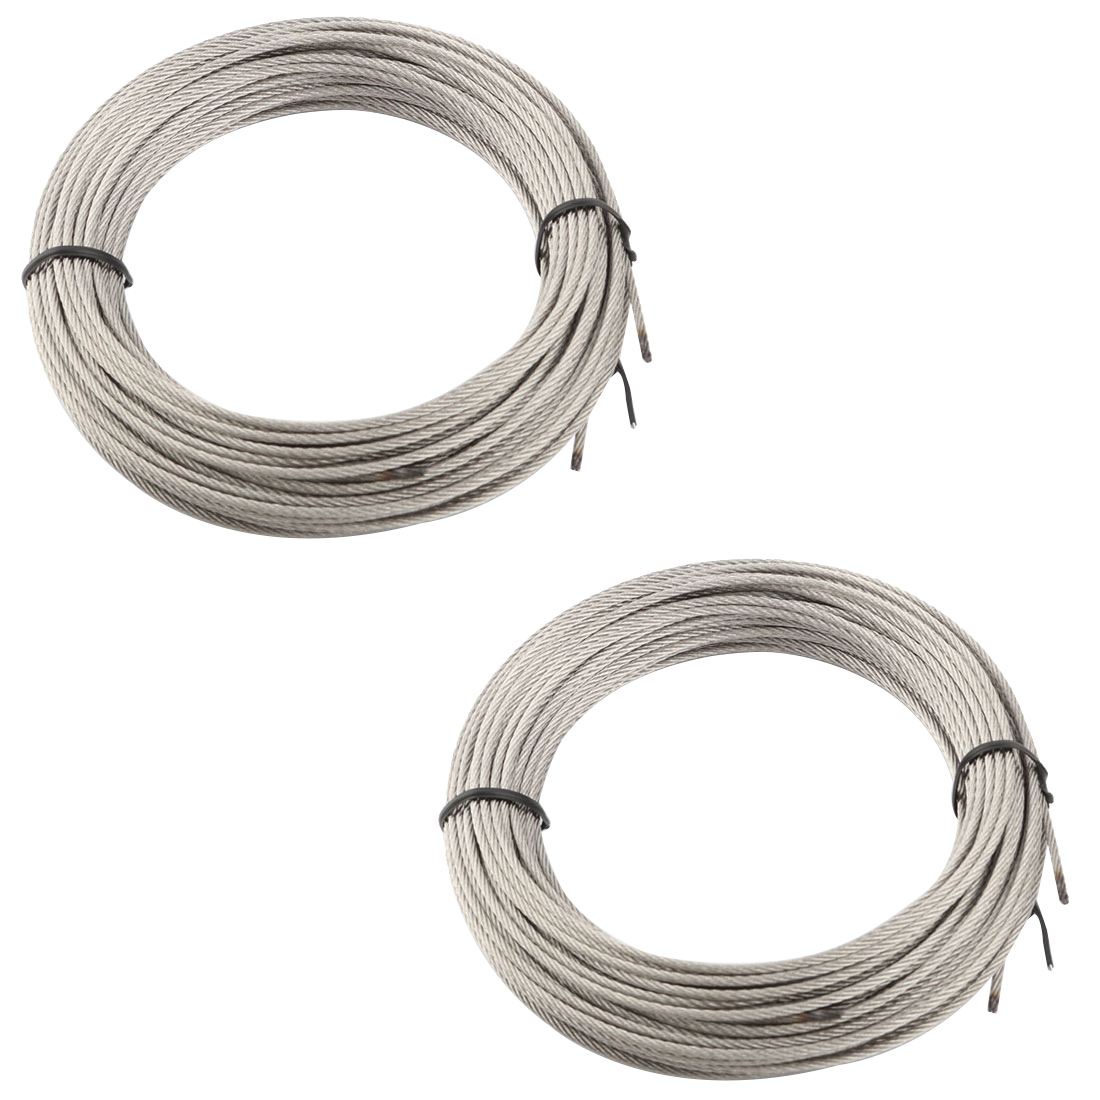 Home Steel Laundry Clothes Drying Hanging Core Rope Silver Tone 7M Length 2 Pcs